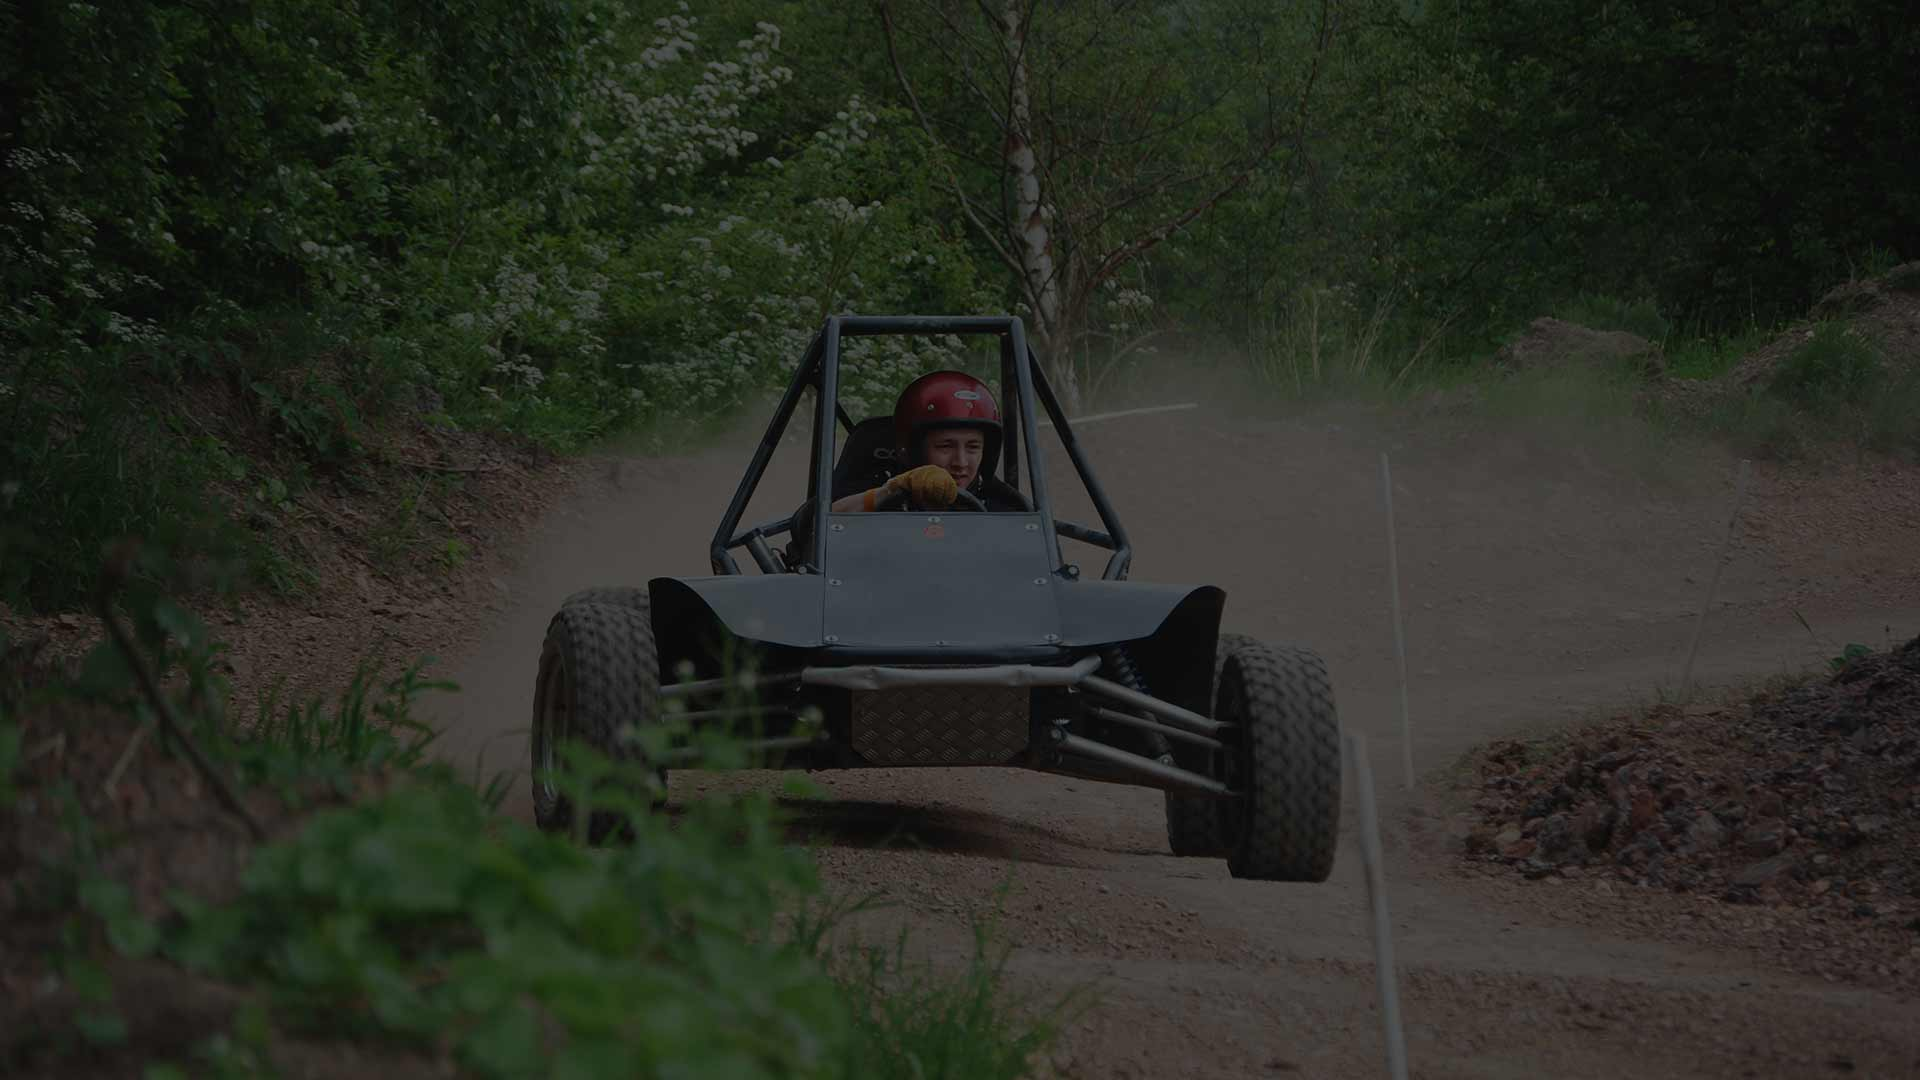 guy in a dirt buggy going round a corner